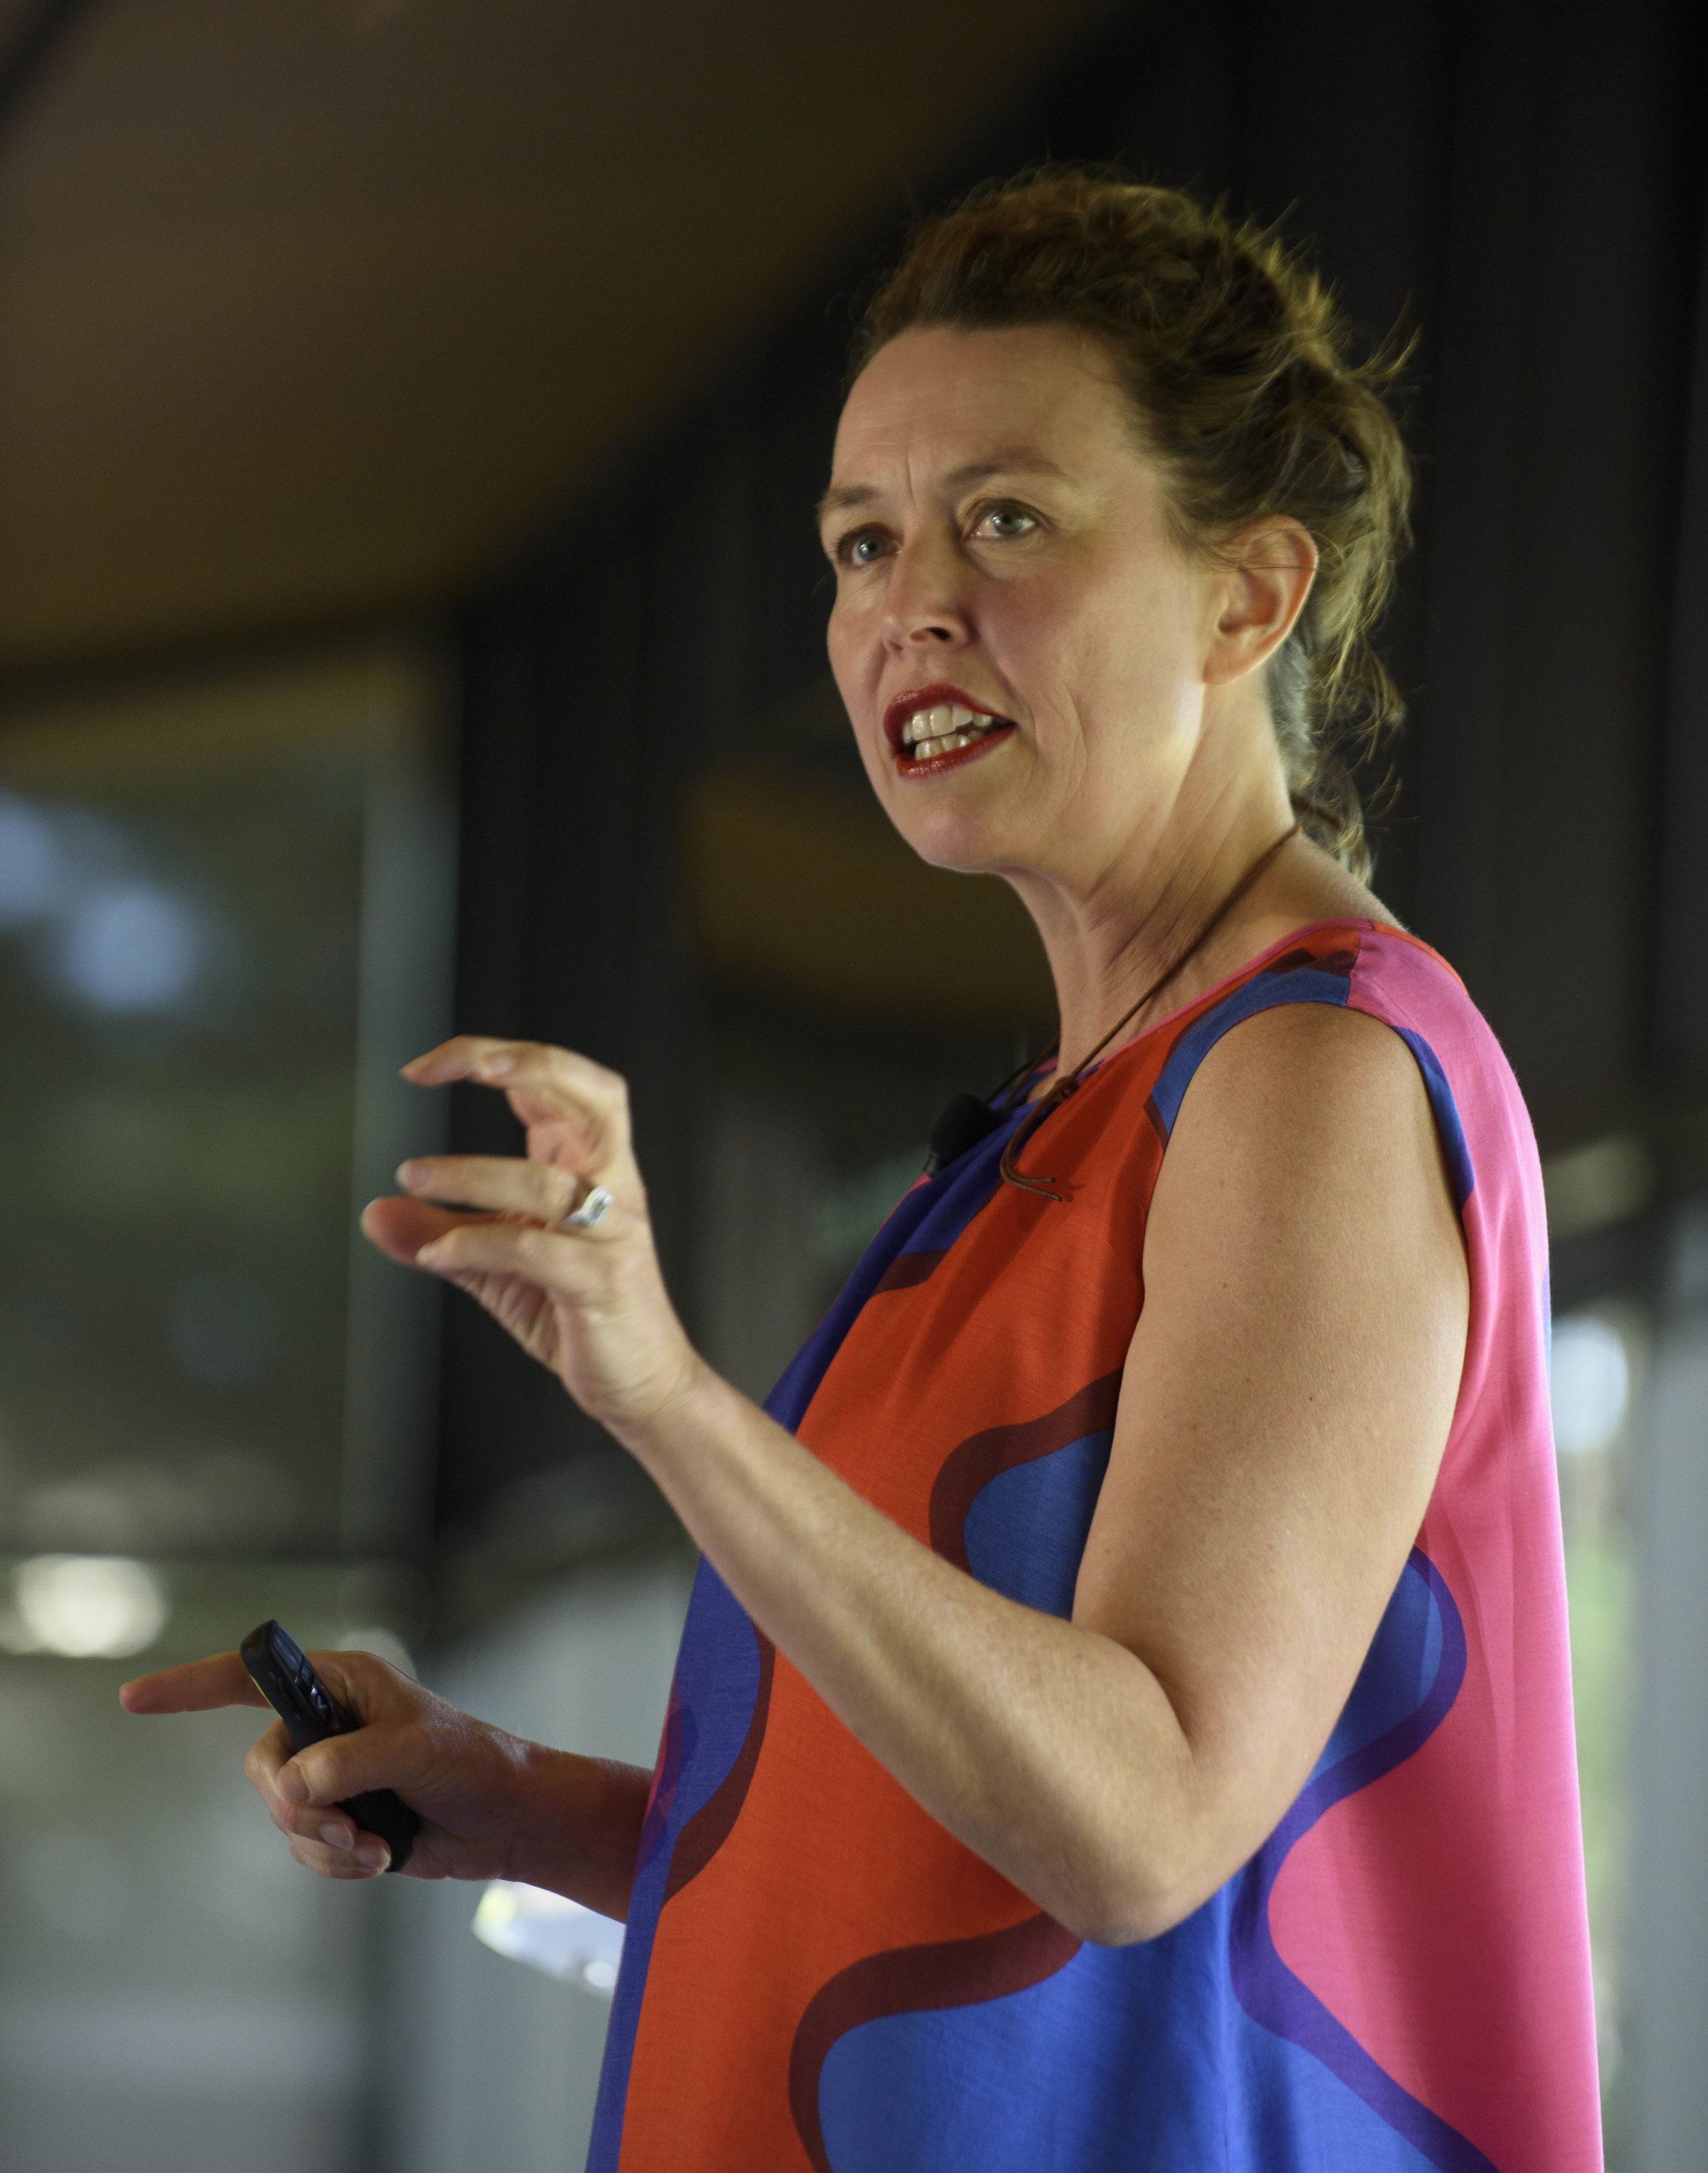 Lucy Cornell Keynote speaking, Voice Coach, The Voice Whisperer